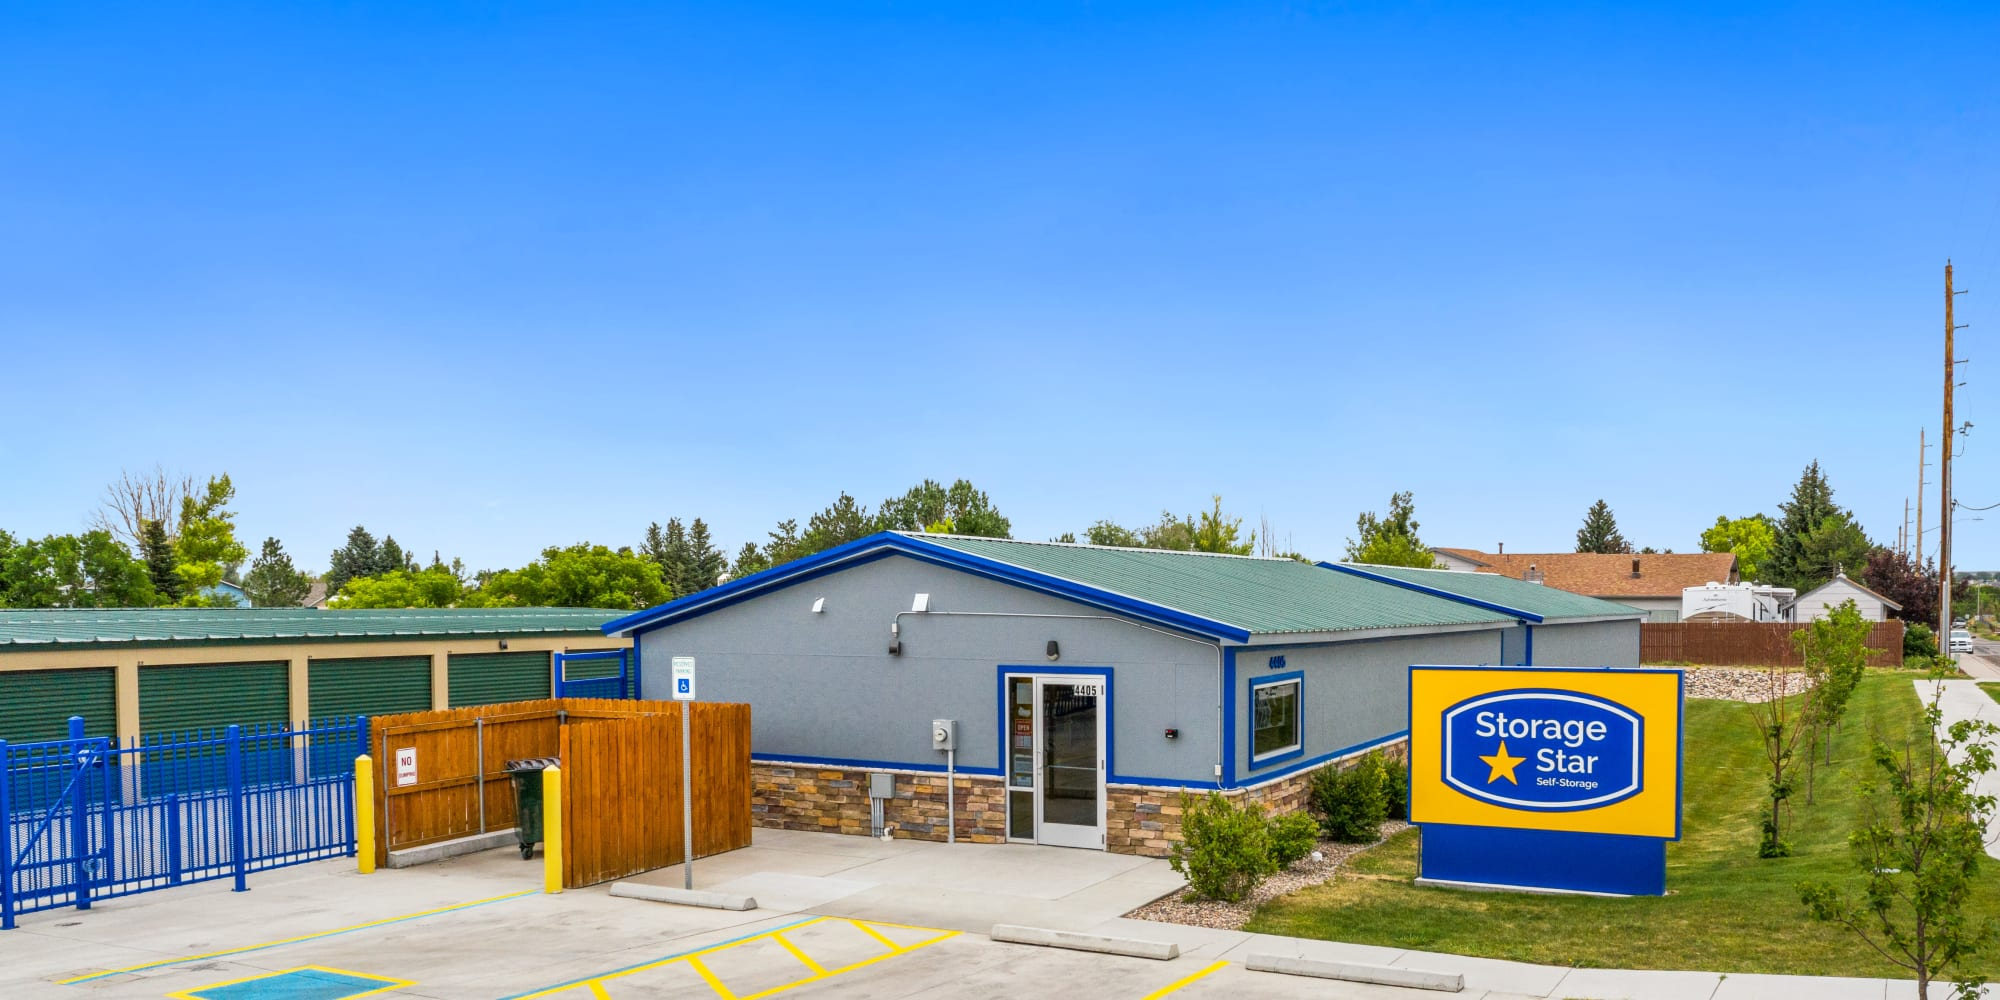 Self storage at Storage Star Cheyenne in Cheyenne, Wyoming